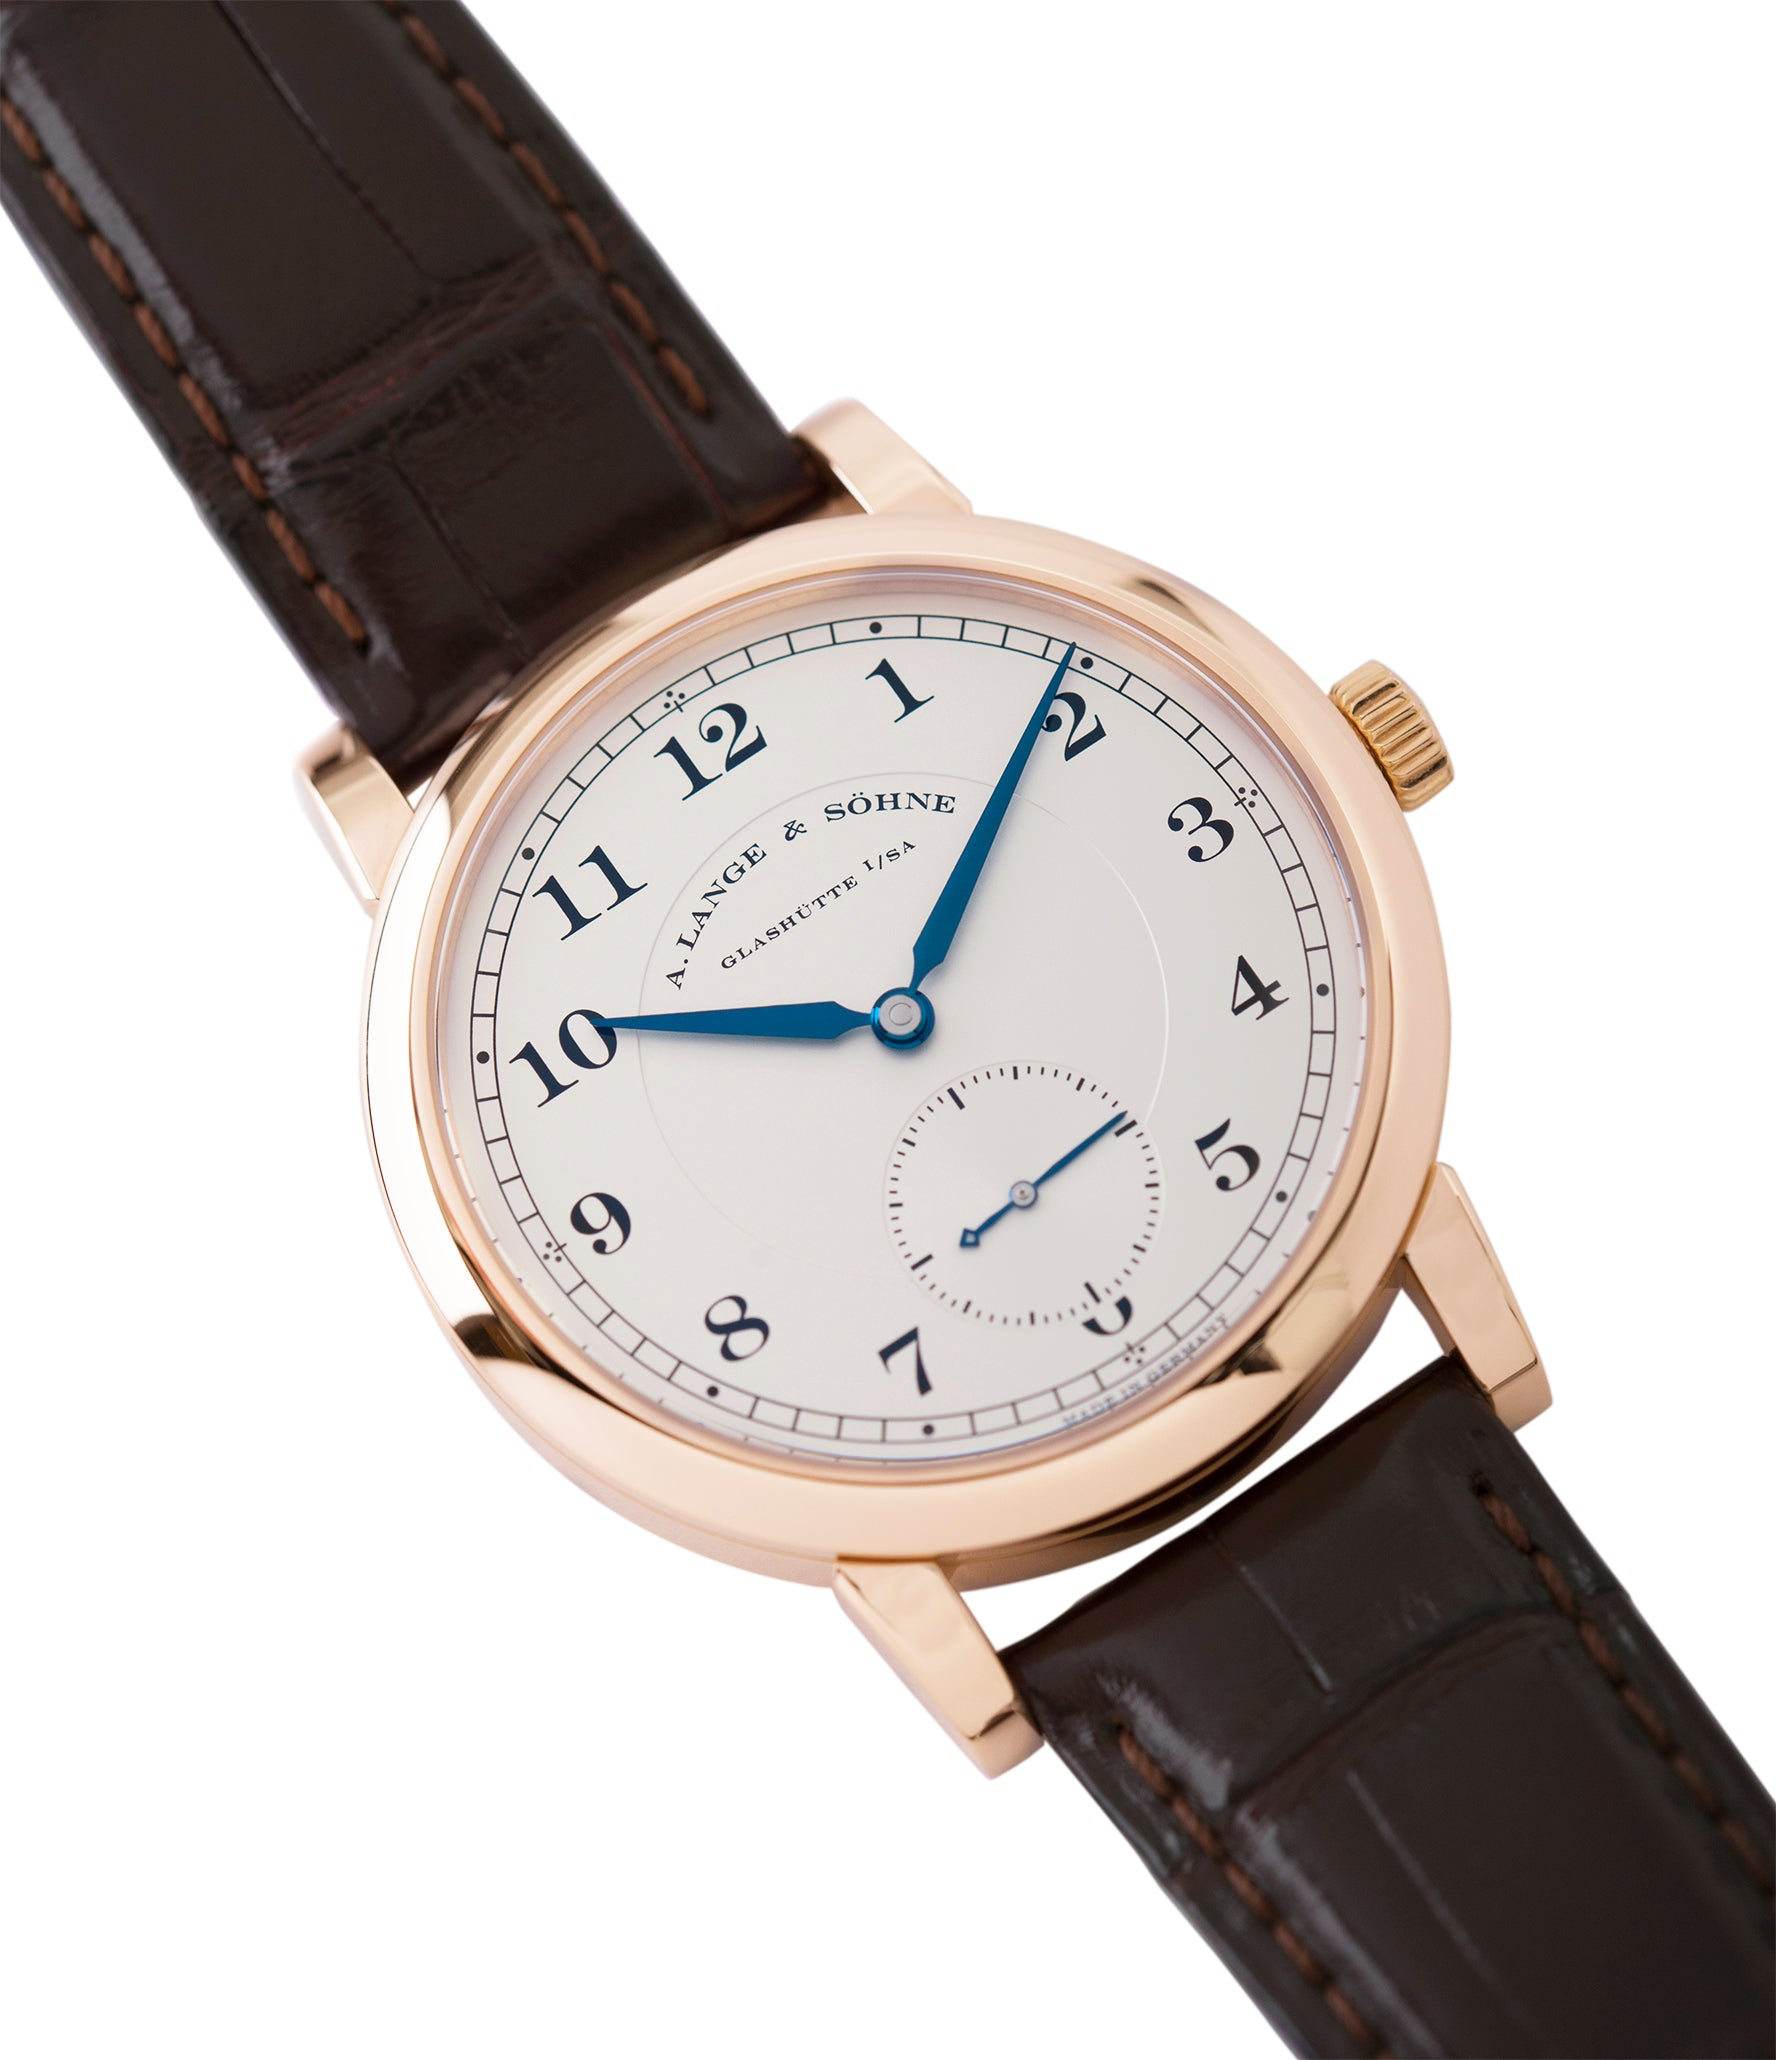 shop A. Lange & Sohne 1815 233.032 rose gold pre-owned dress watch for sale online at A Collected Man London Uk specialist of preowned luxury watches